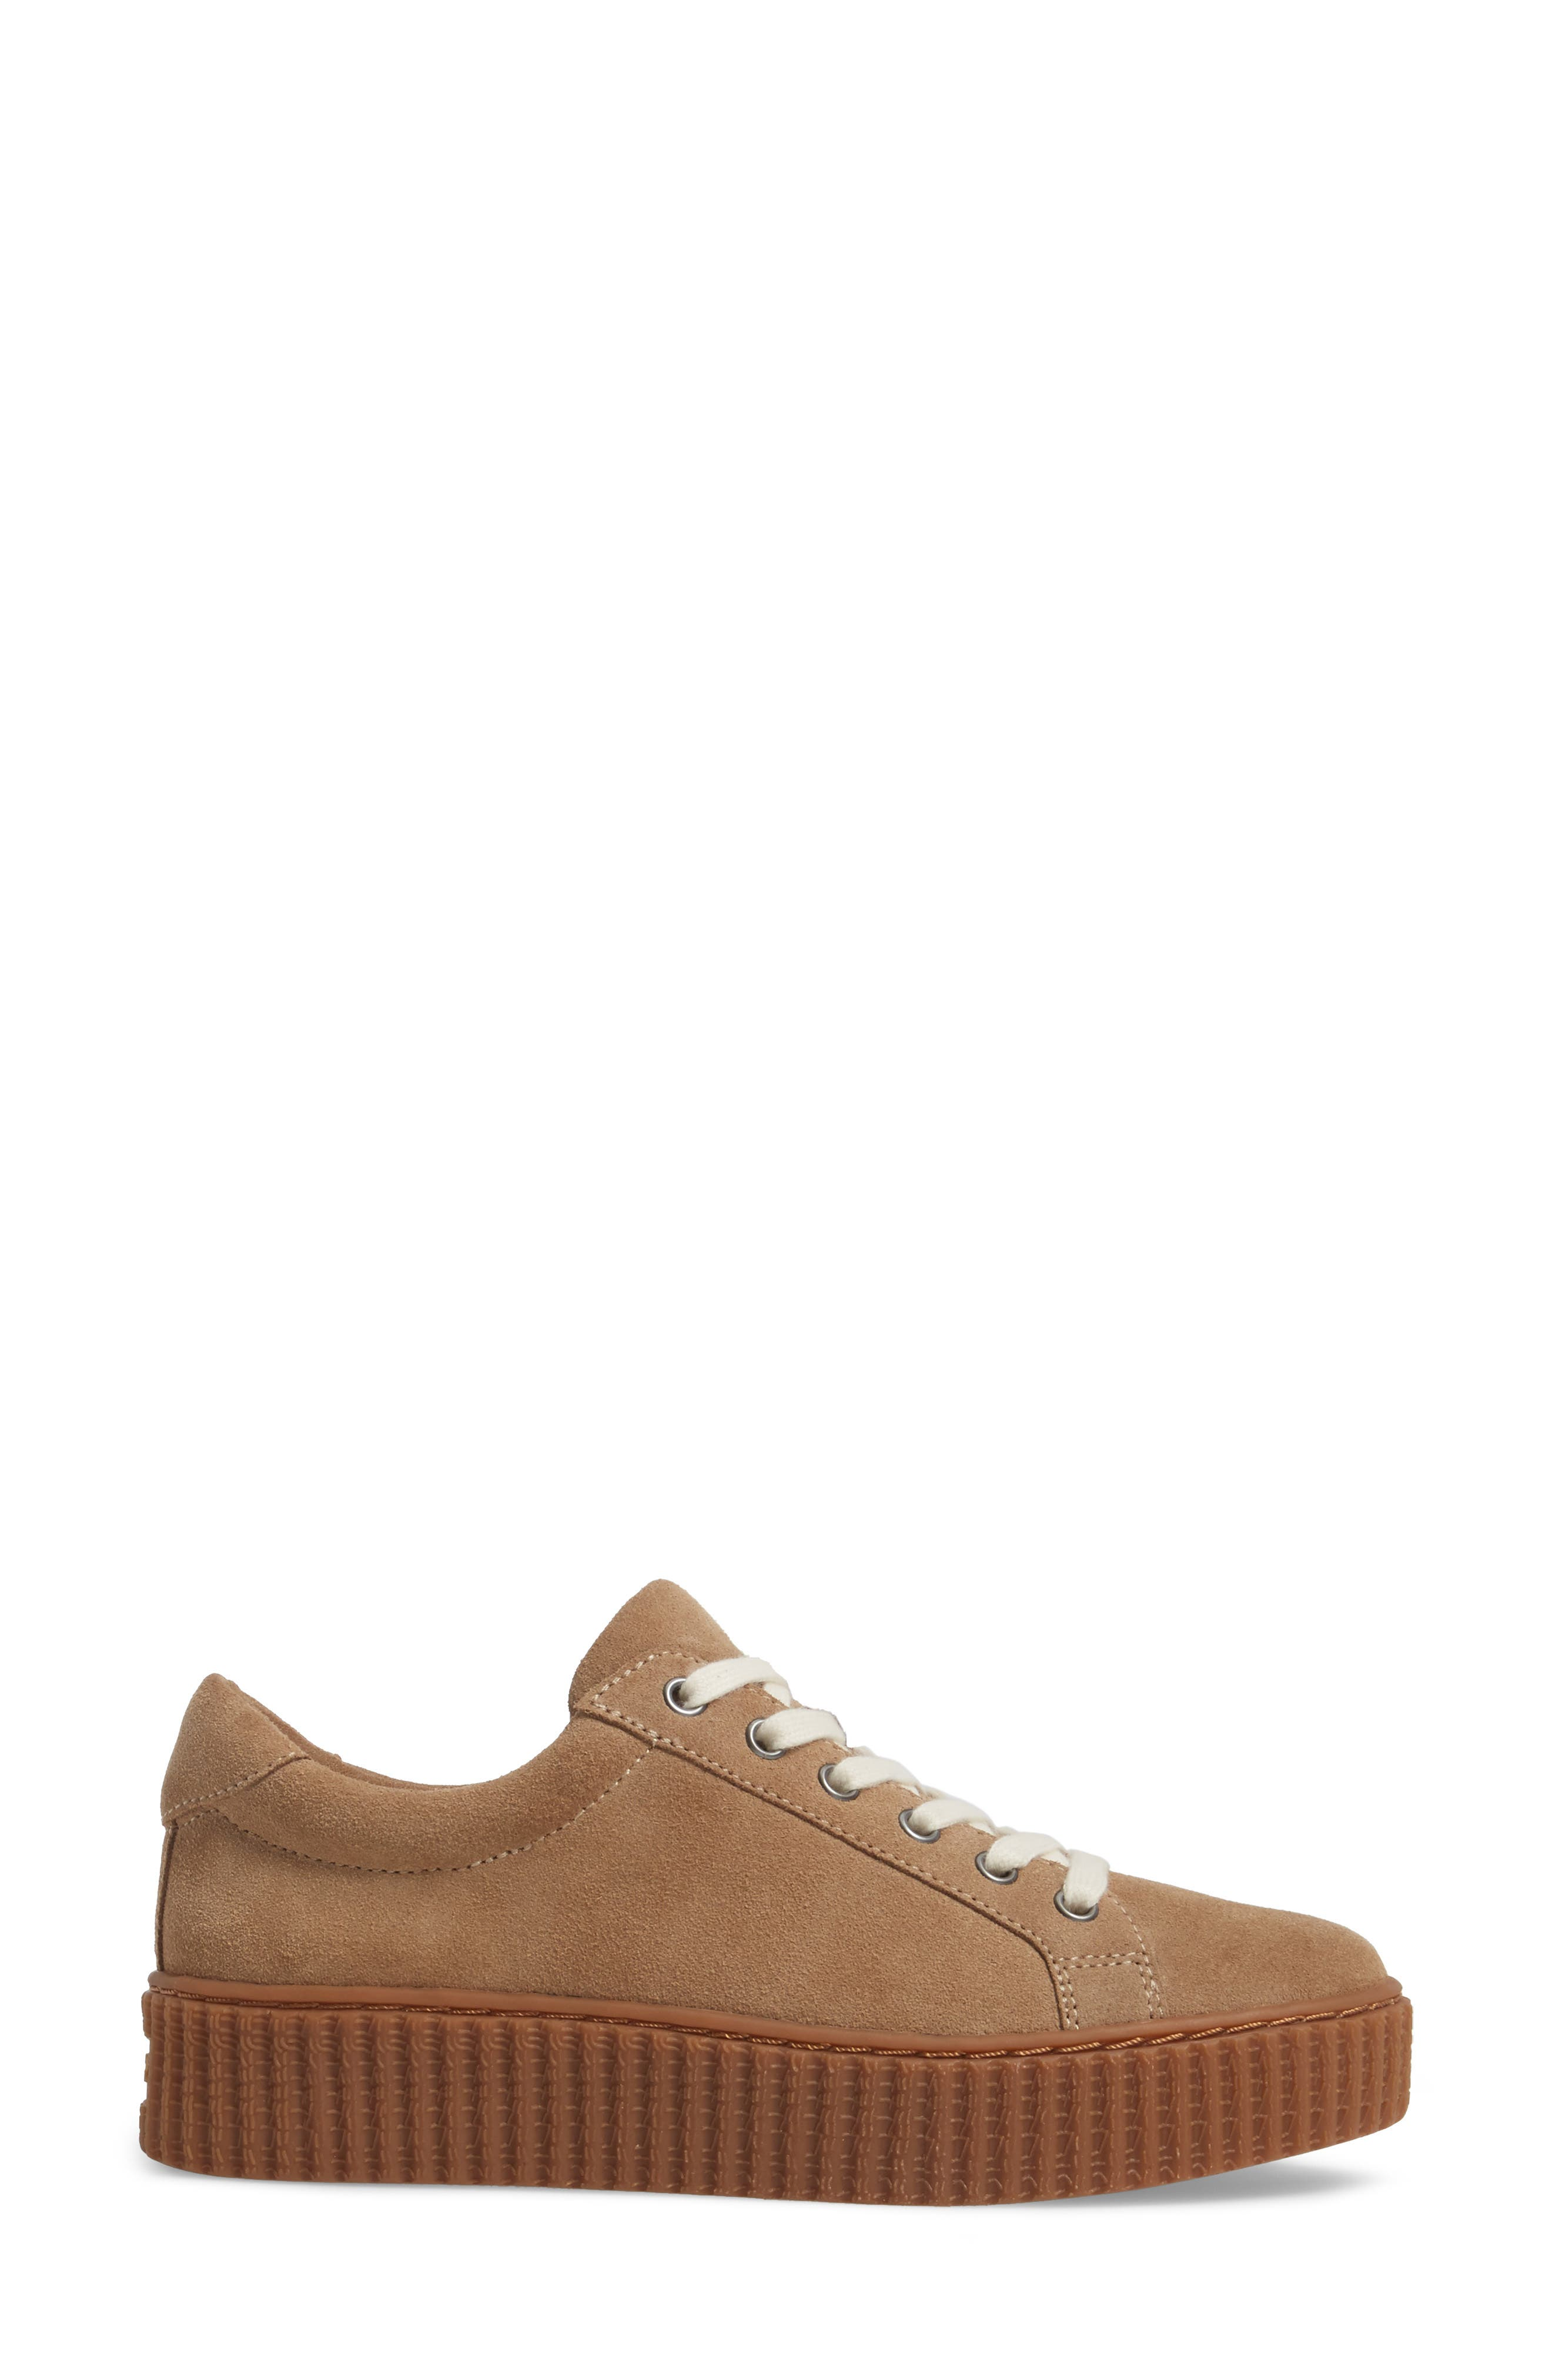 Ruth Platform Sneaker,                             Alternate thumbnail 3, color,                             Light Taupe Suede